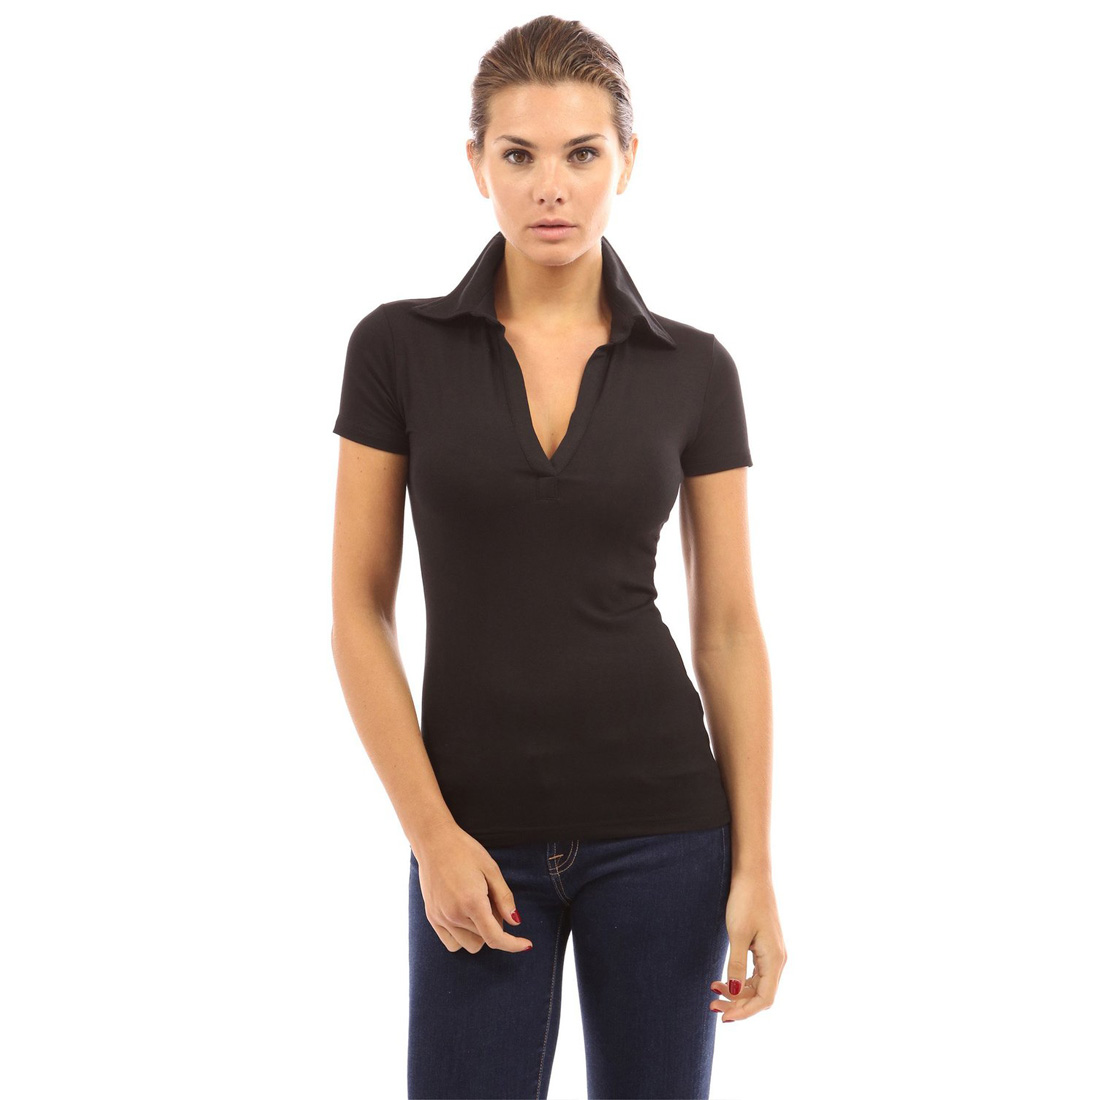 Womens v neck short sleeve polo shirt slim fit casual for Ladies shirts and tops blouses